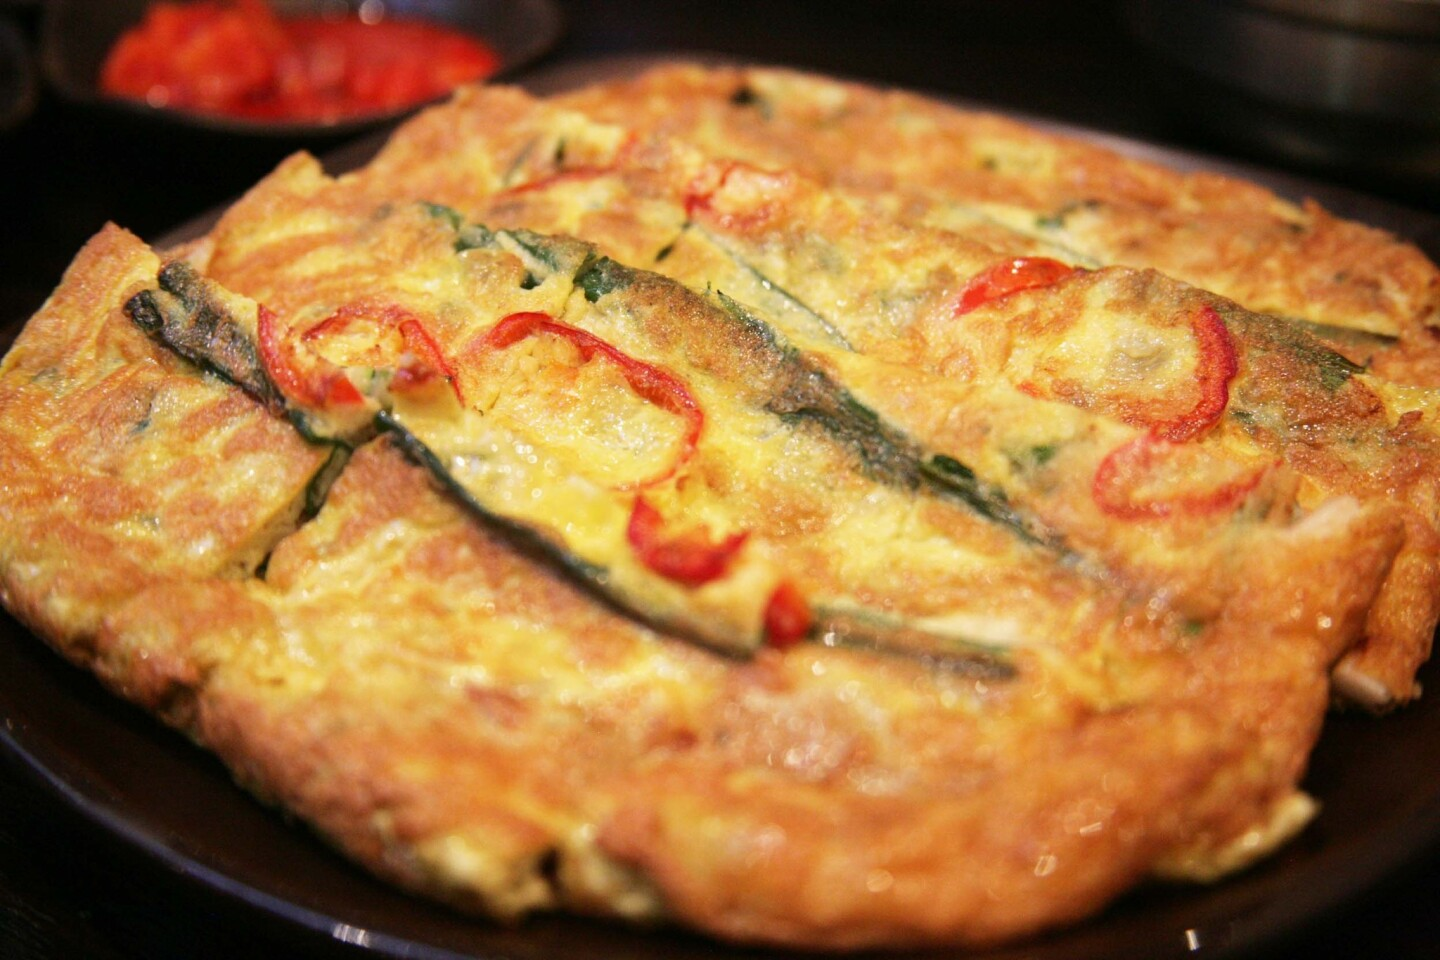 The haemul pajeon (seafood pancake) is a generously thick pancake, made with more than the usual amount of eggs in the batter.